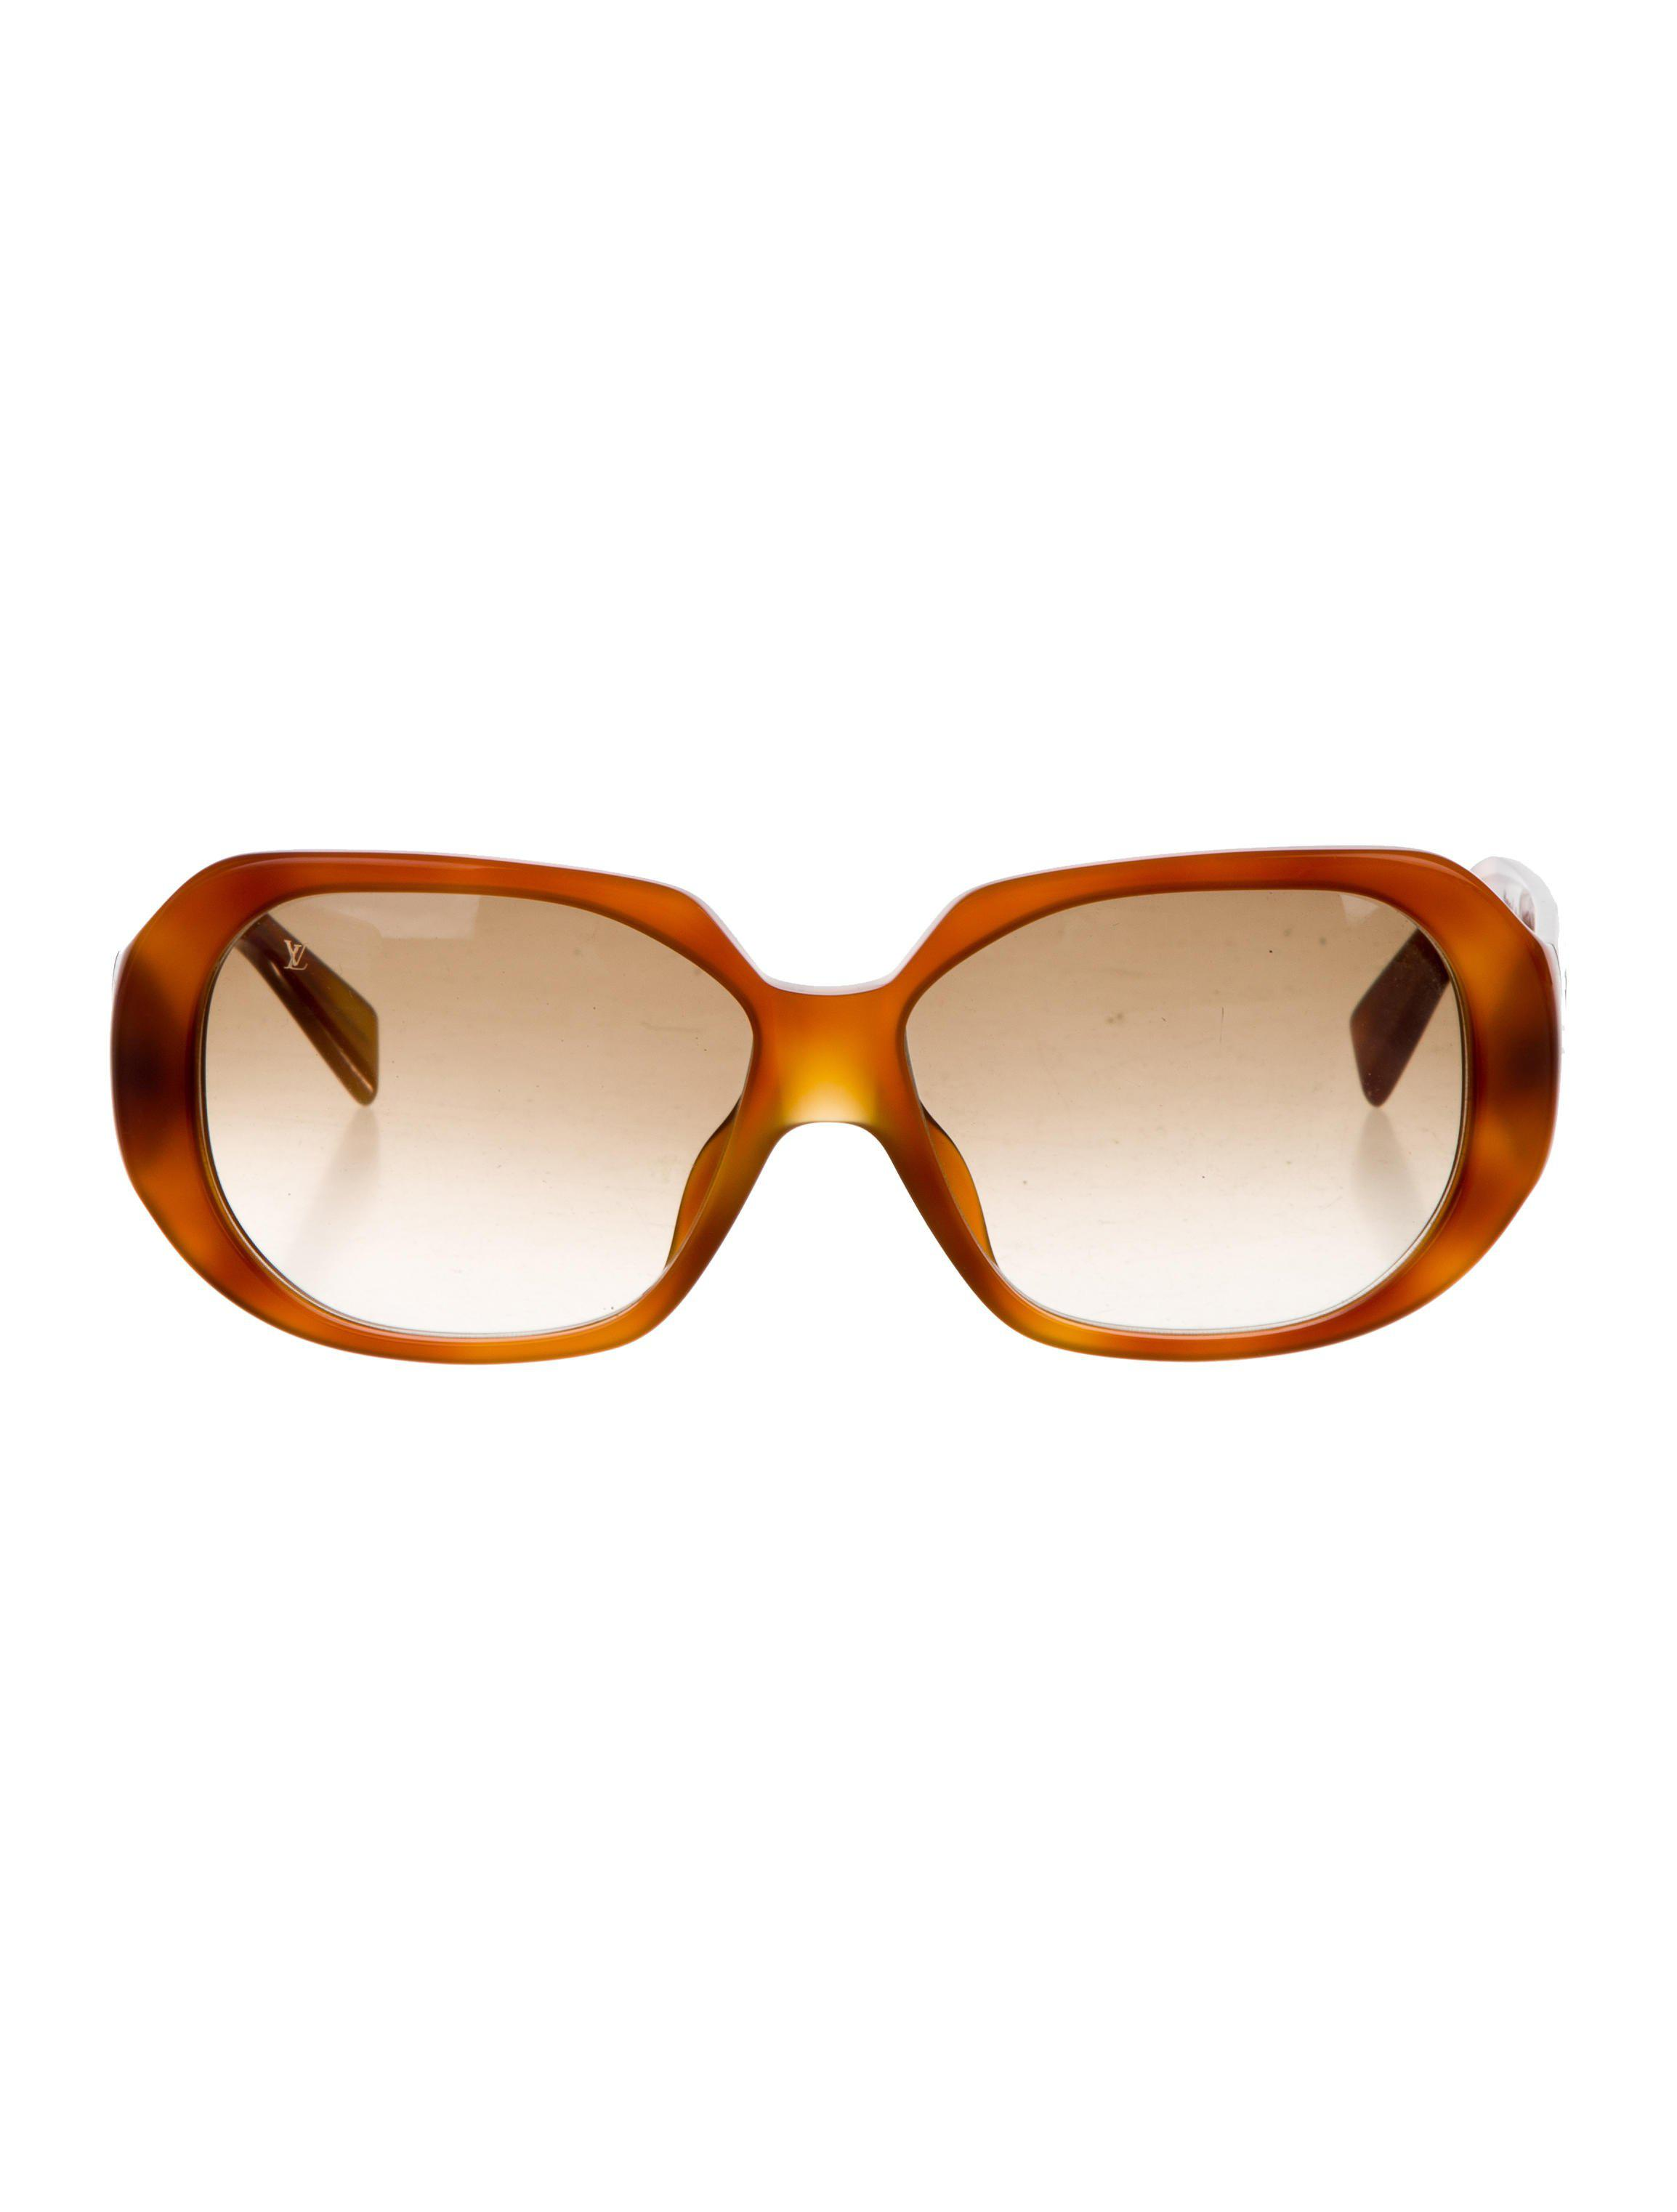 07a3ec14aef Louis Vuitton Butterfly Sunglasses Brown « One More Soul